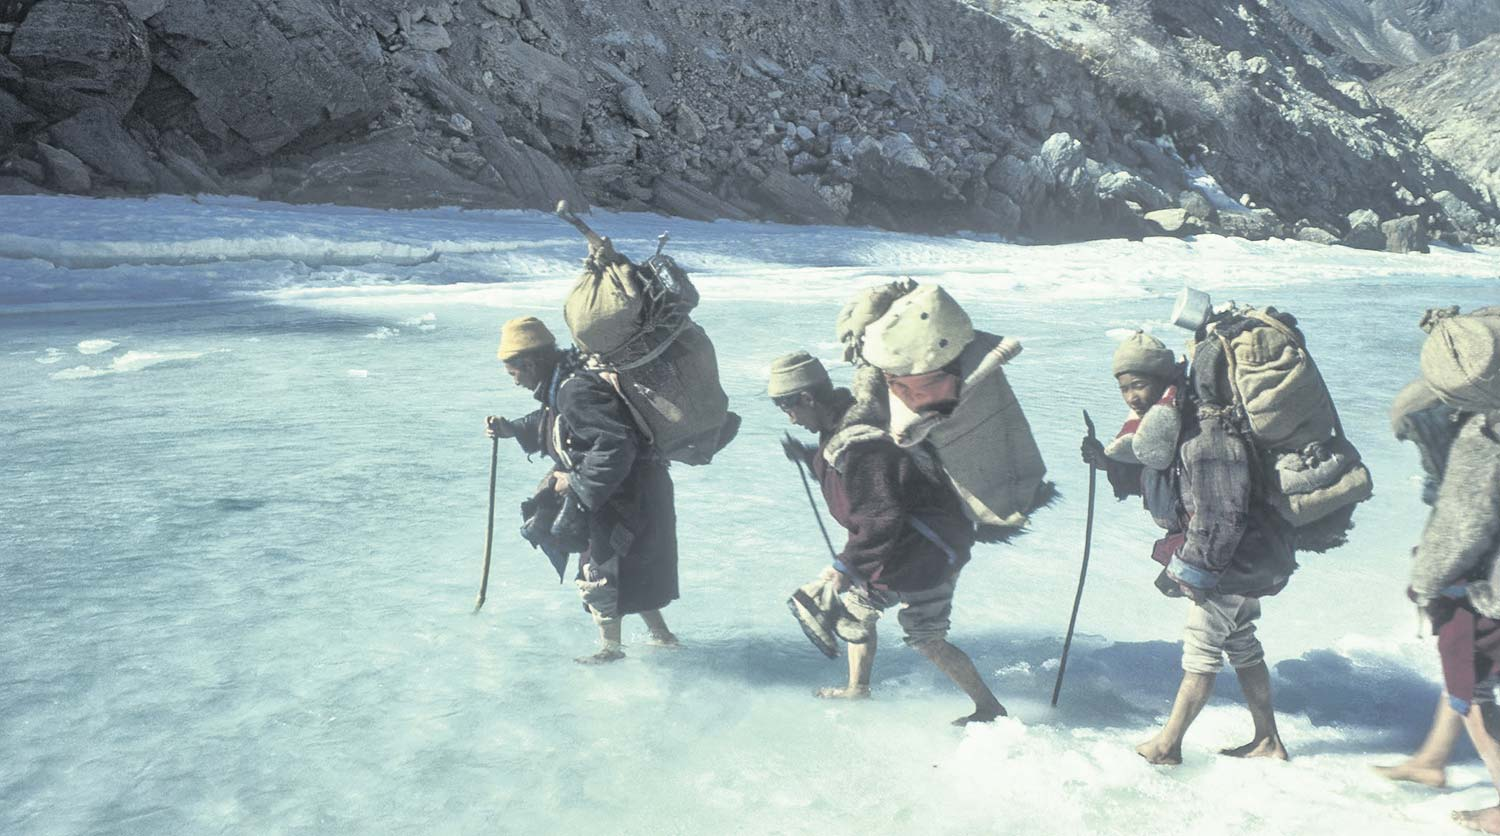 Dorje Tsering Leads Walkers Across The Icy River